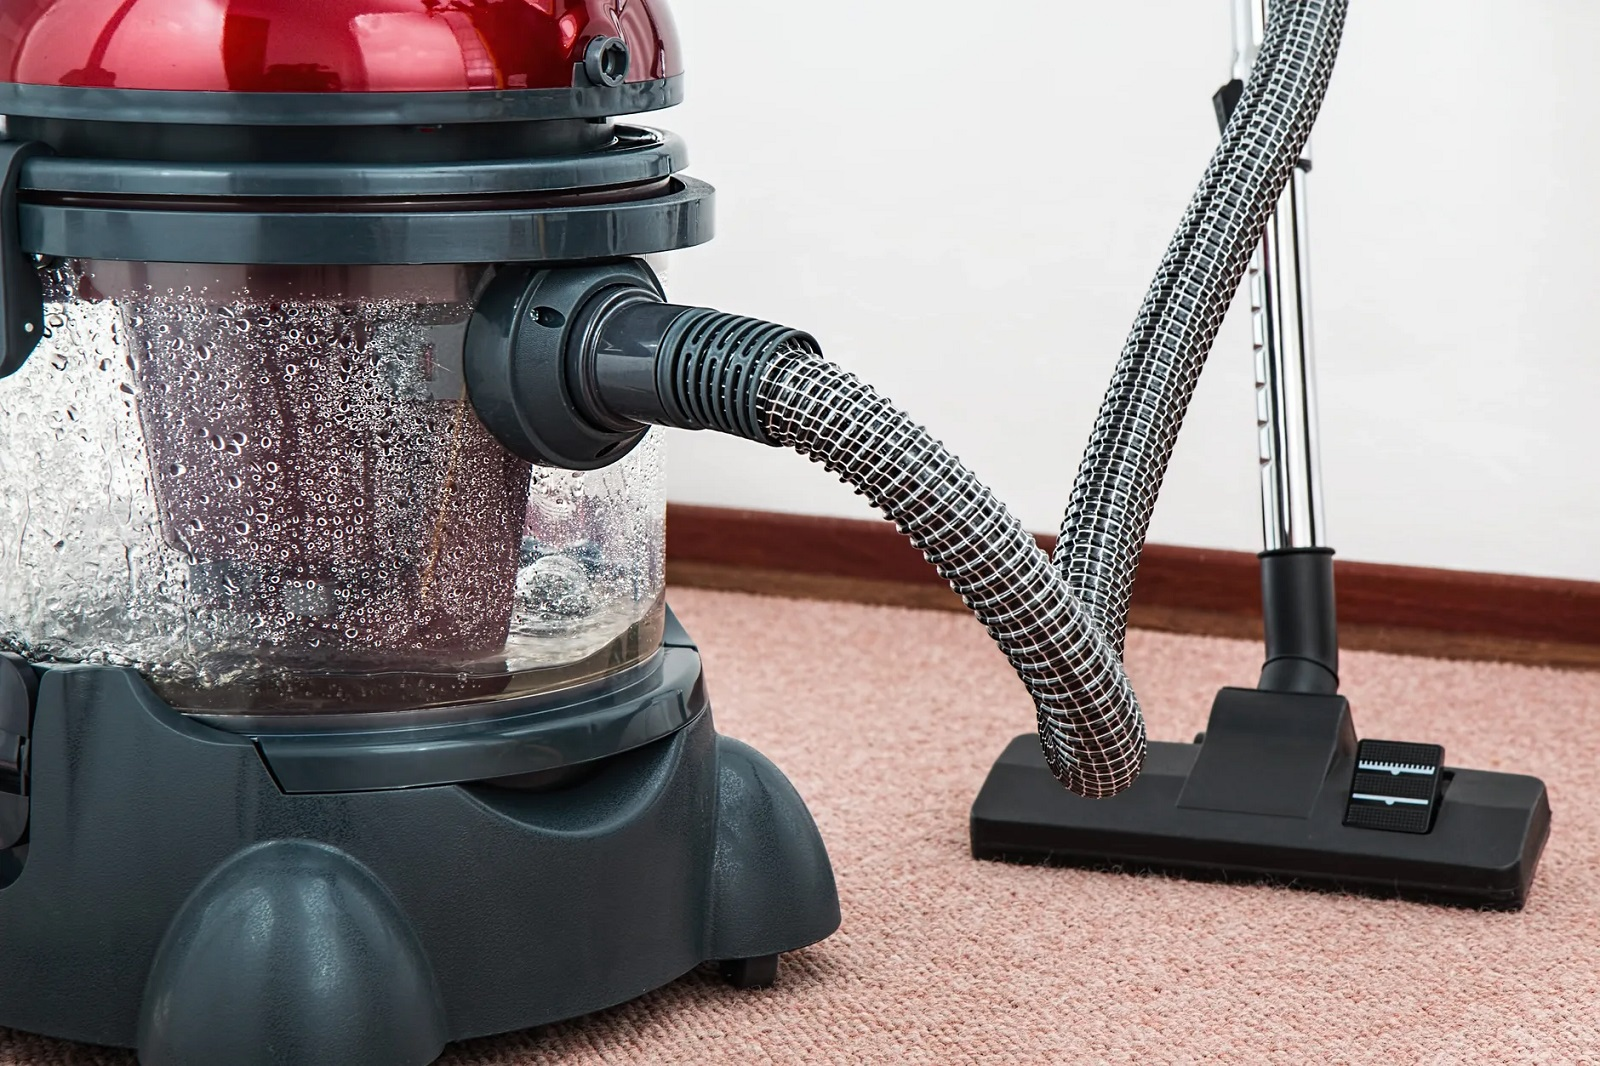 Carpet Cleaning Equipment's in Budget for Making Carpet Long Lasting